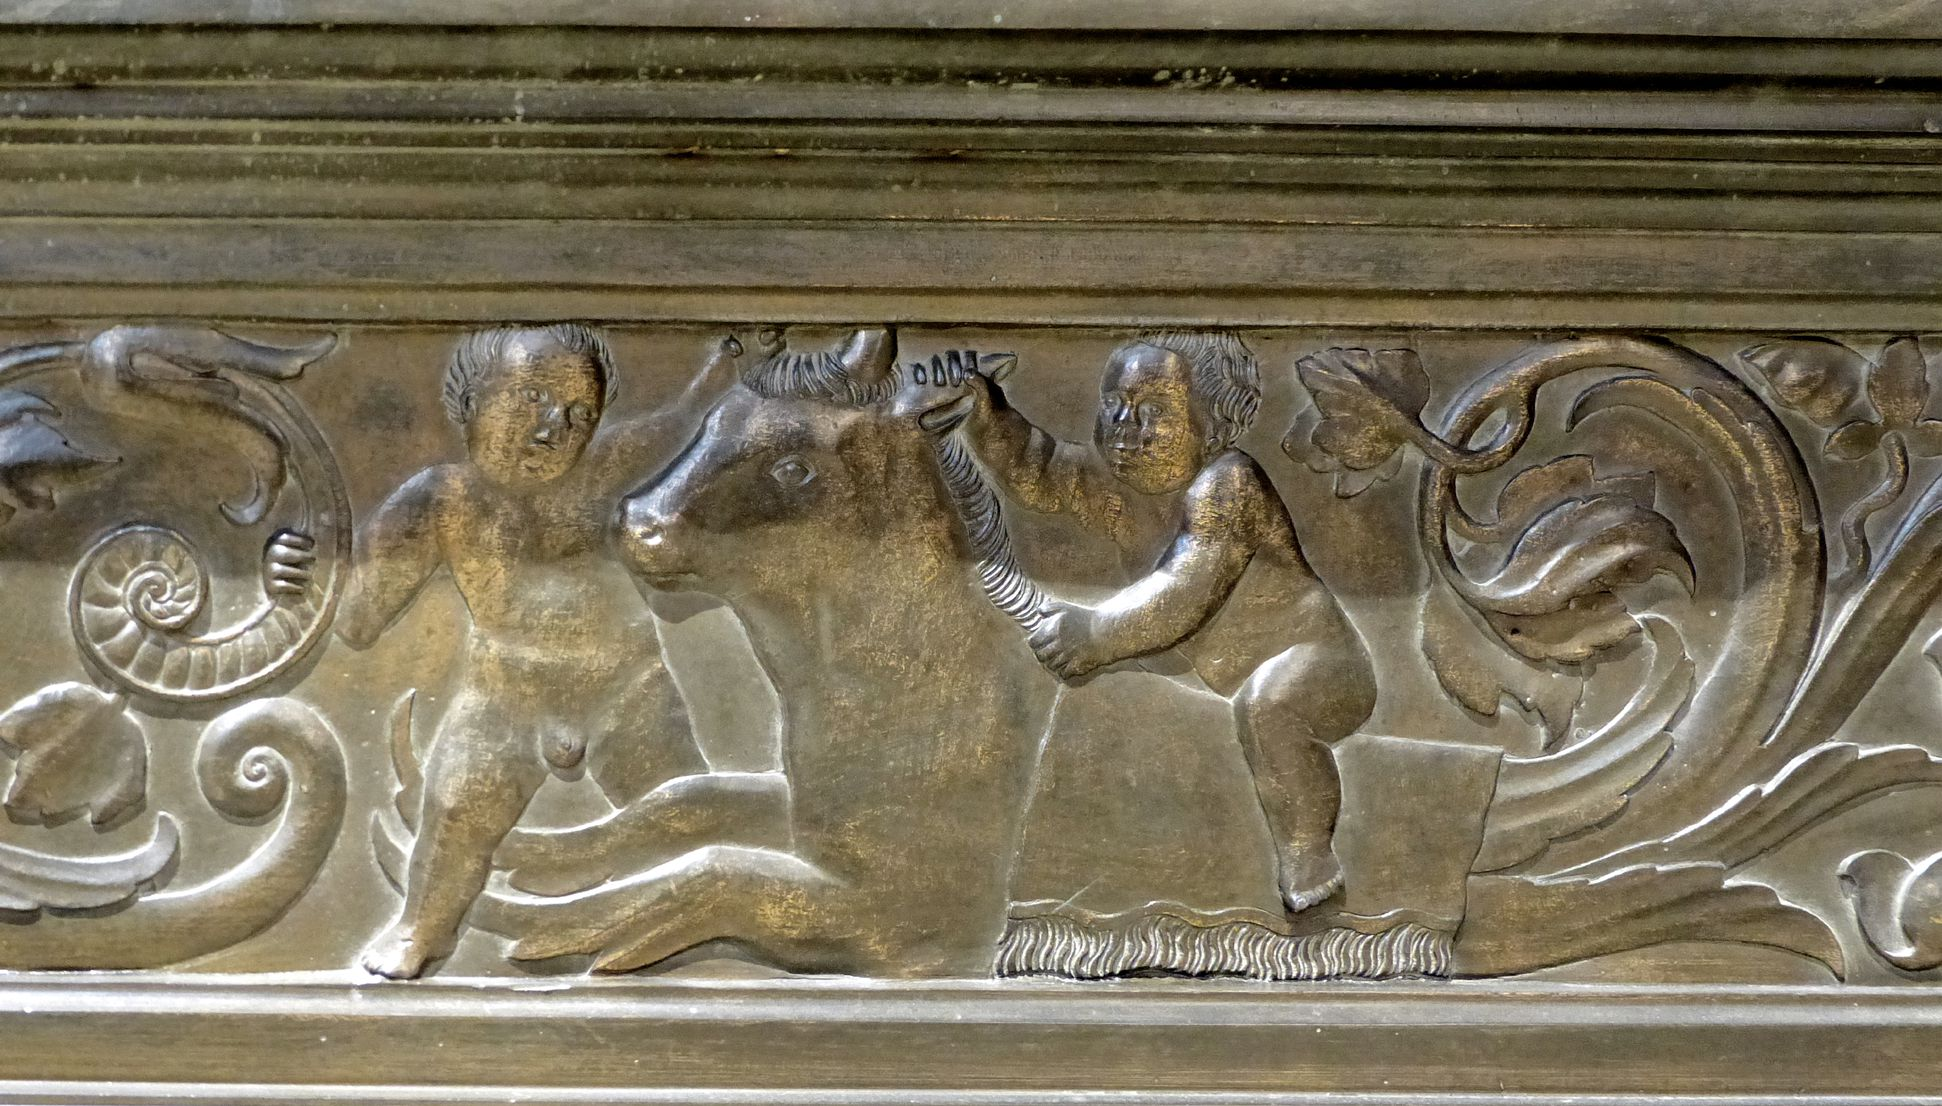 Tomb of Frederick the Wise (Wittenberg) Tomb slab, basis: with taurus/mythical creatures, playing putti, right